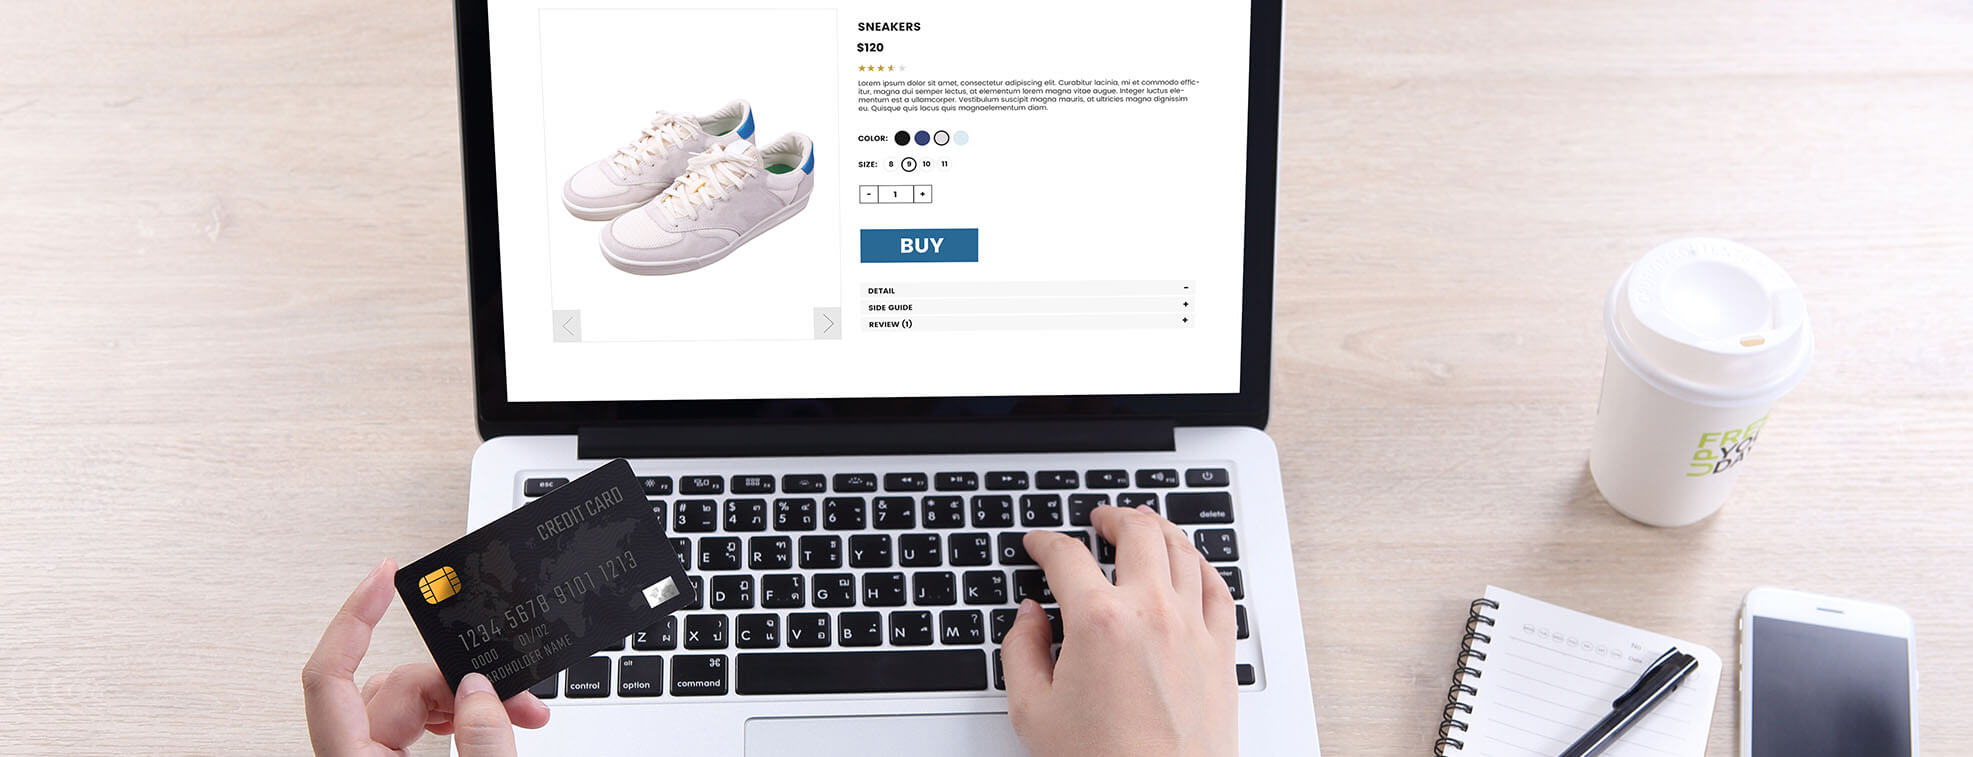 ordering shoes online